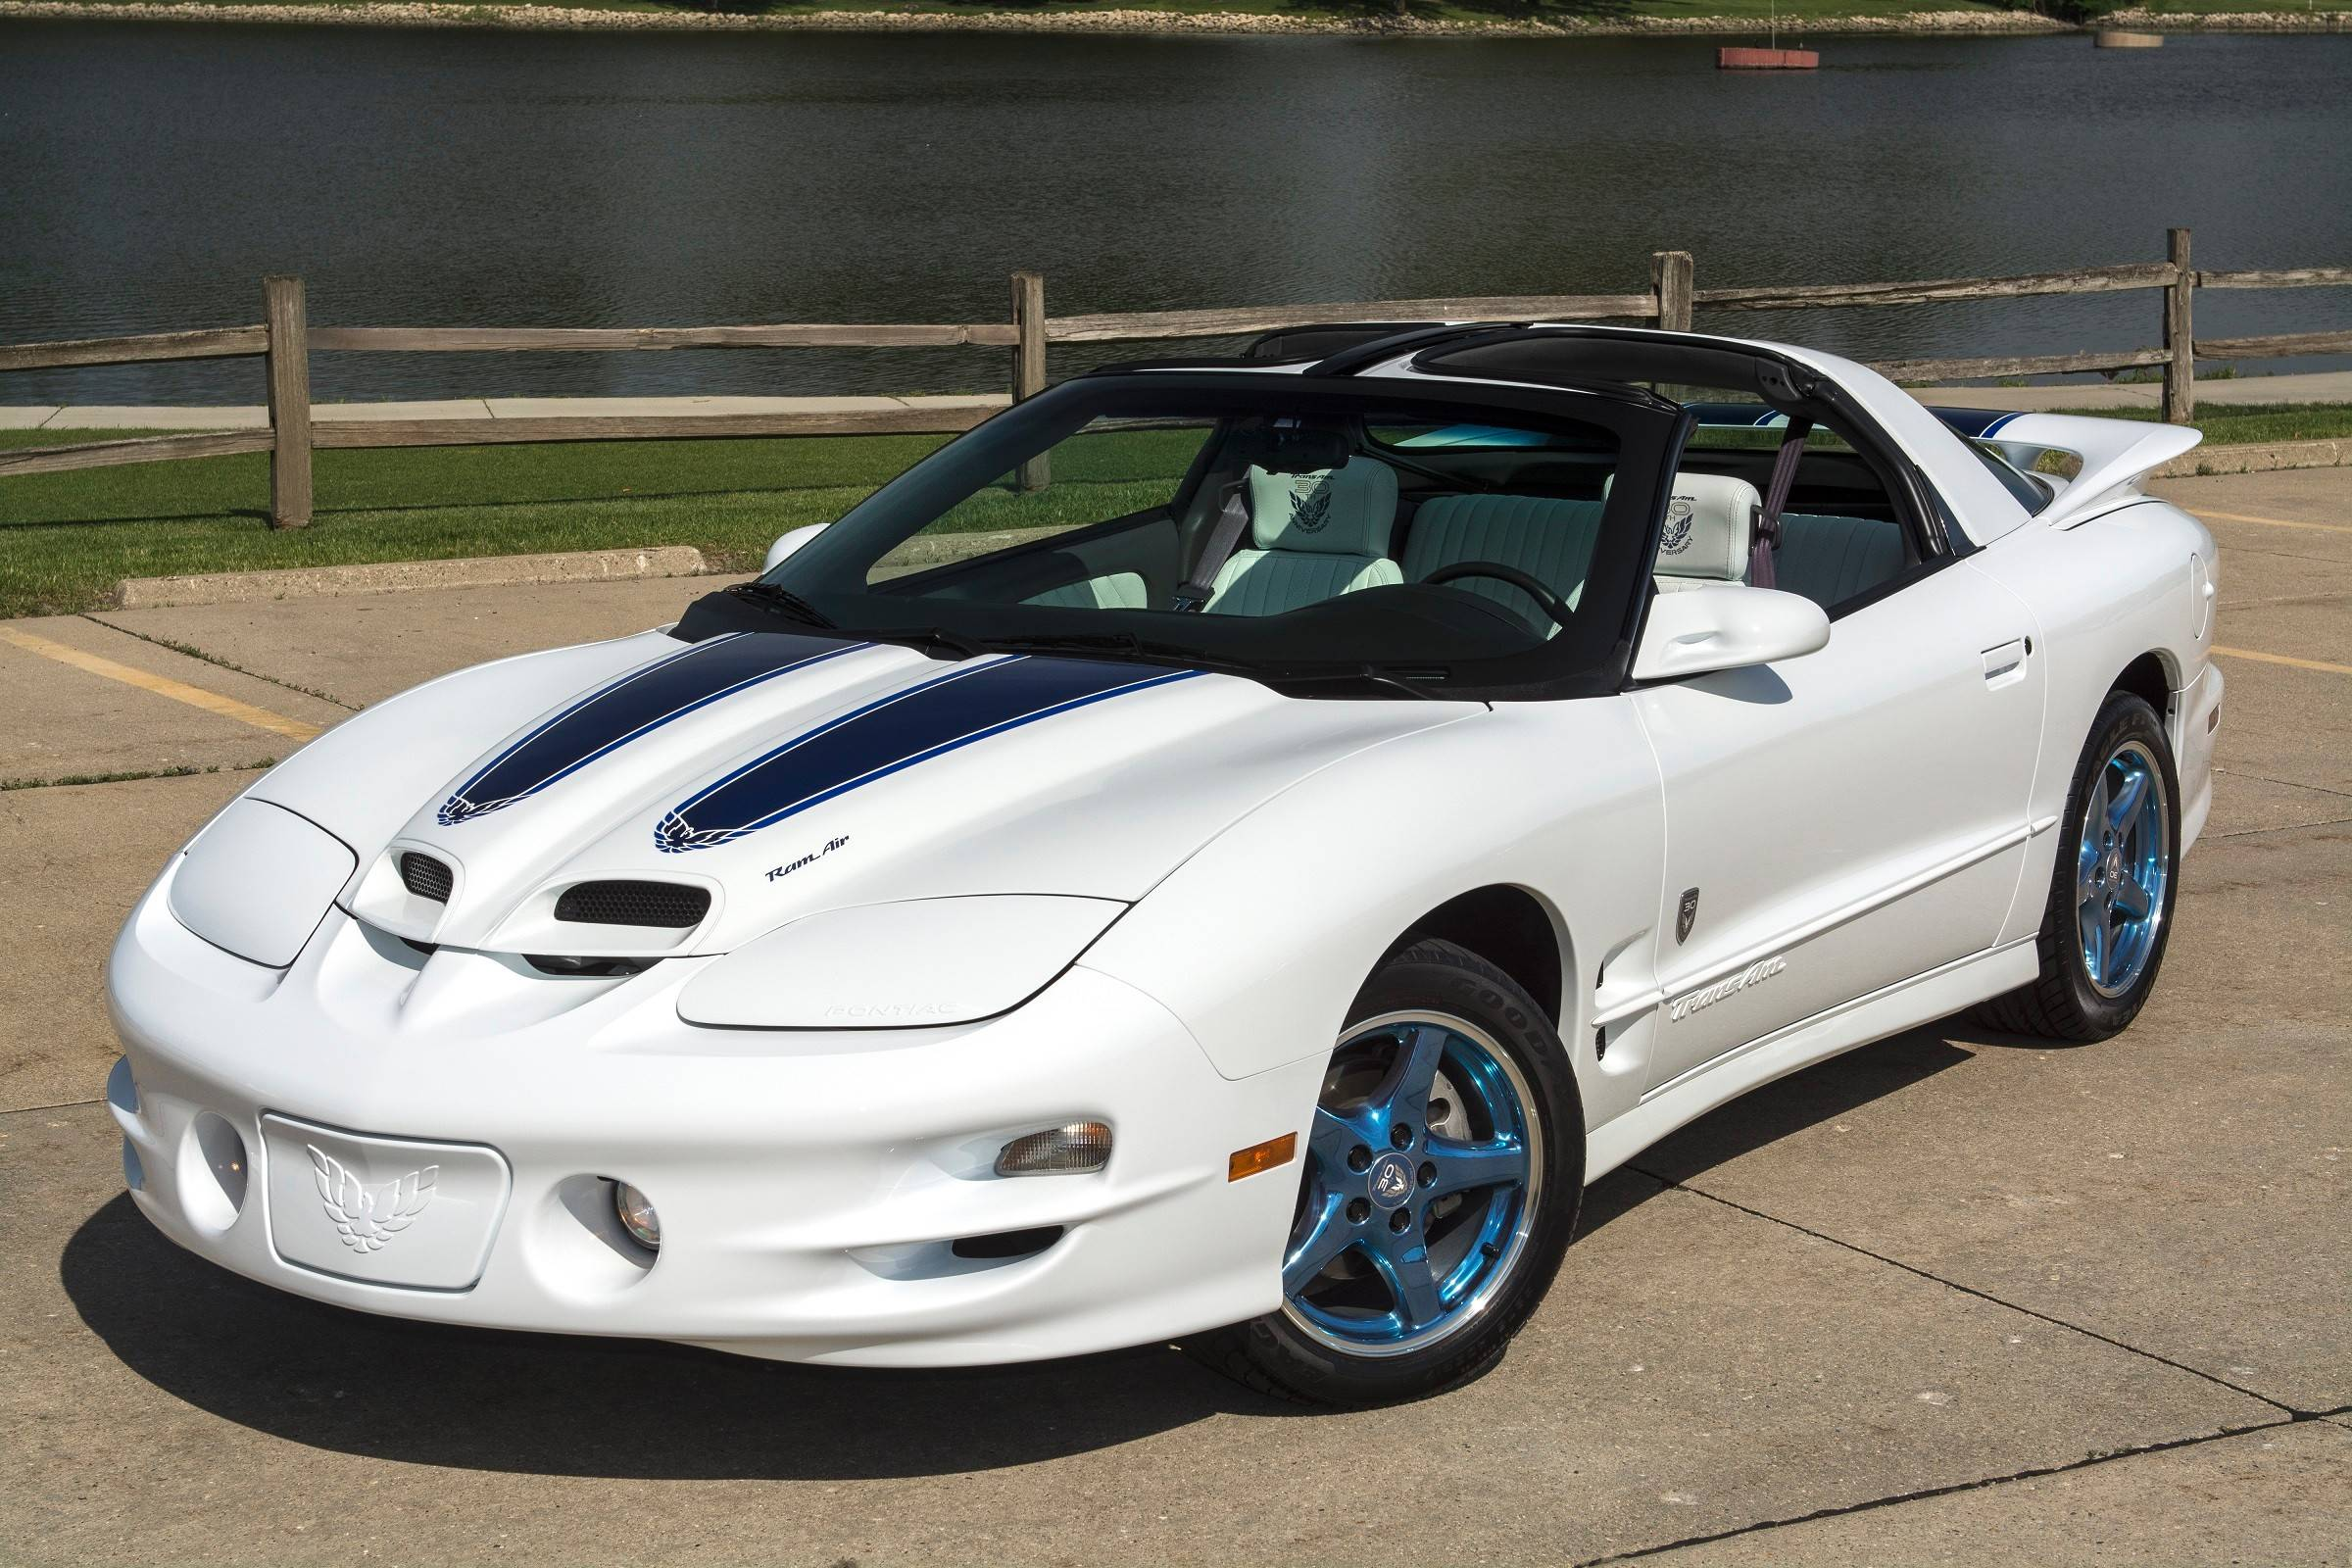 To celebrate the Trans Am's 30th anniversary, Pontiac made 1,600 special editions in 1999. It became the last redesign of the model before the Trans Am was discontinued.